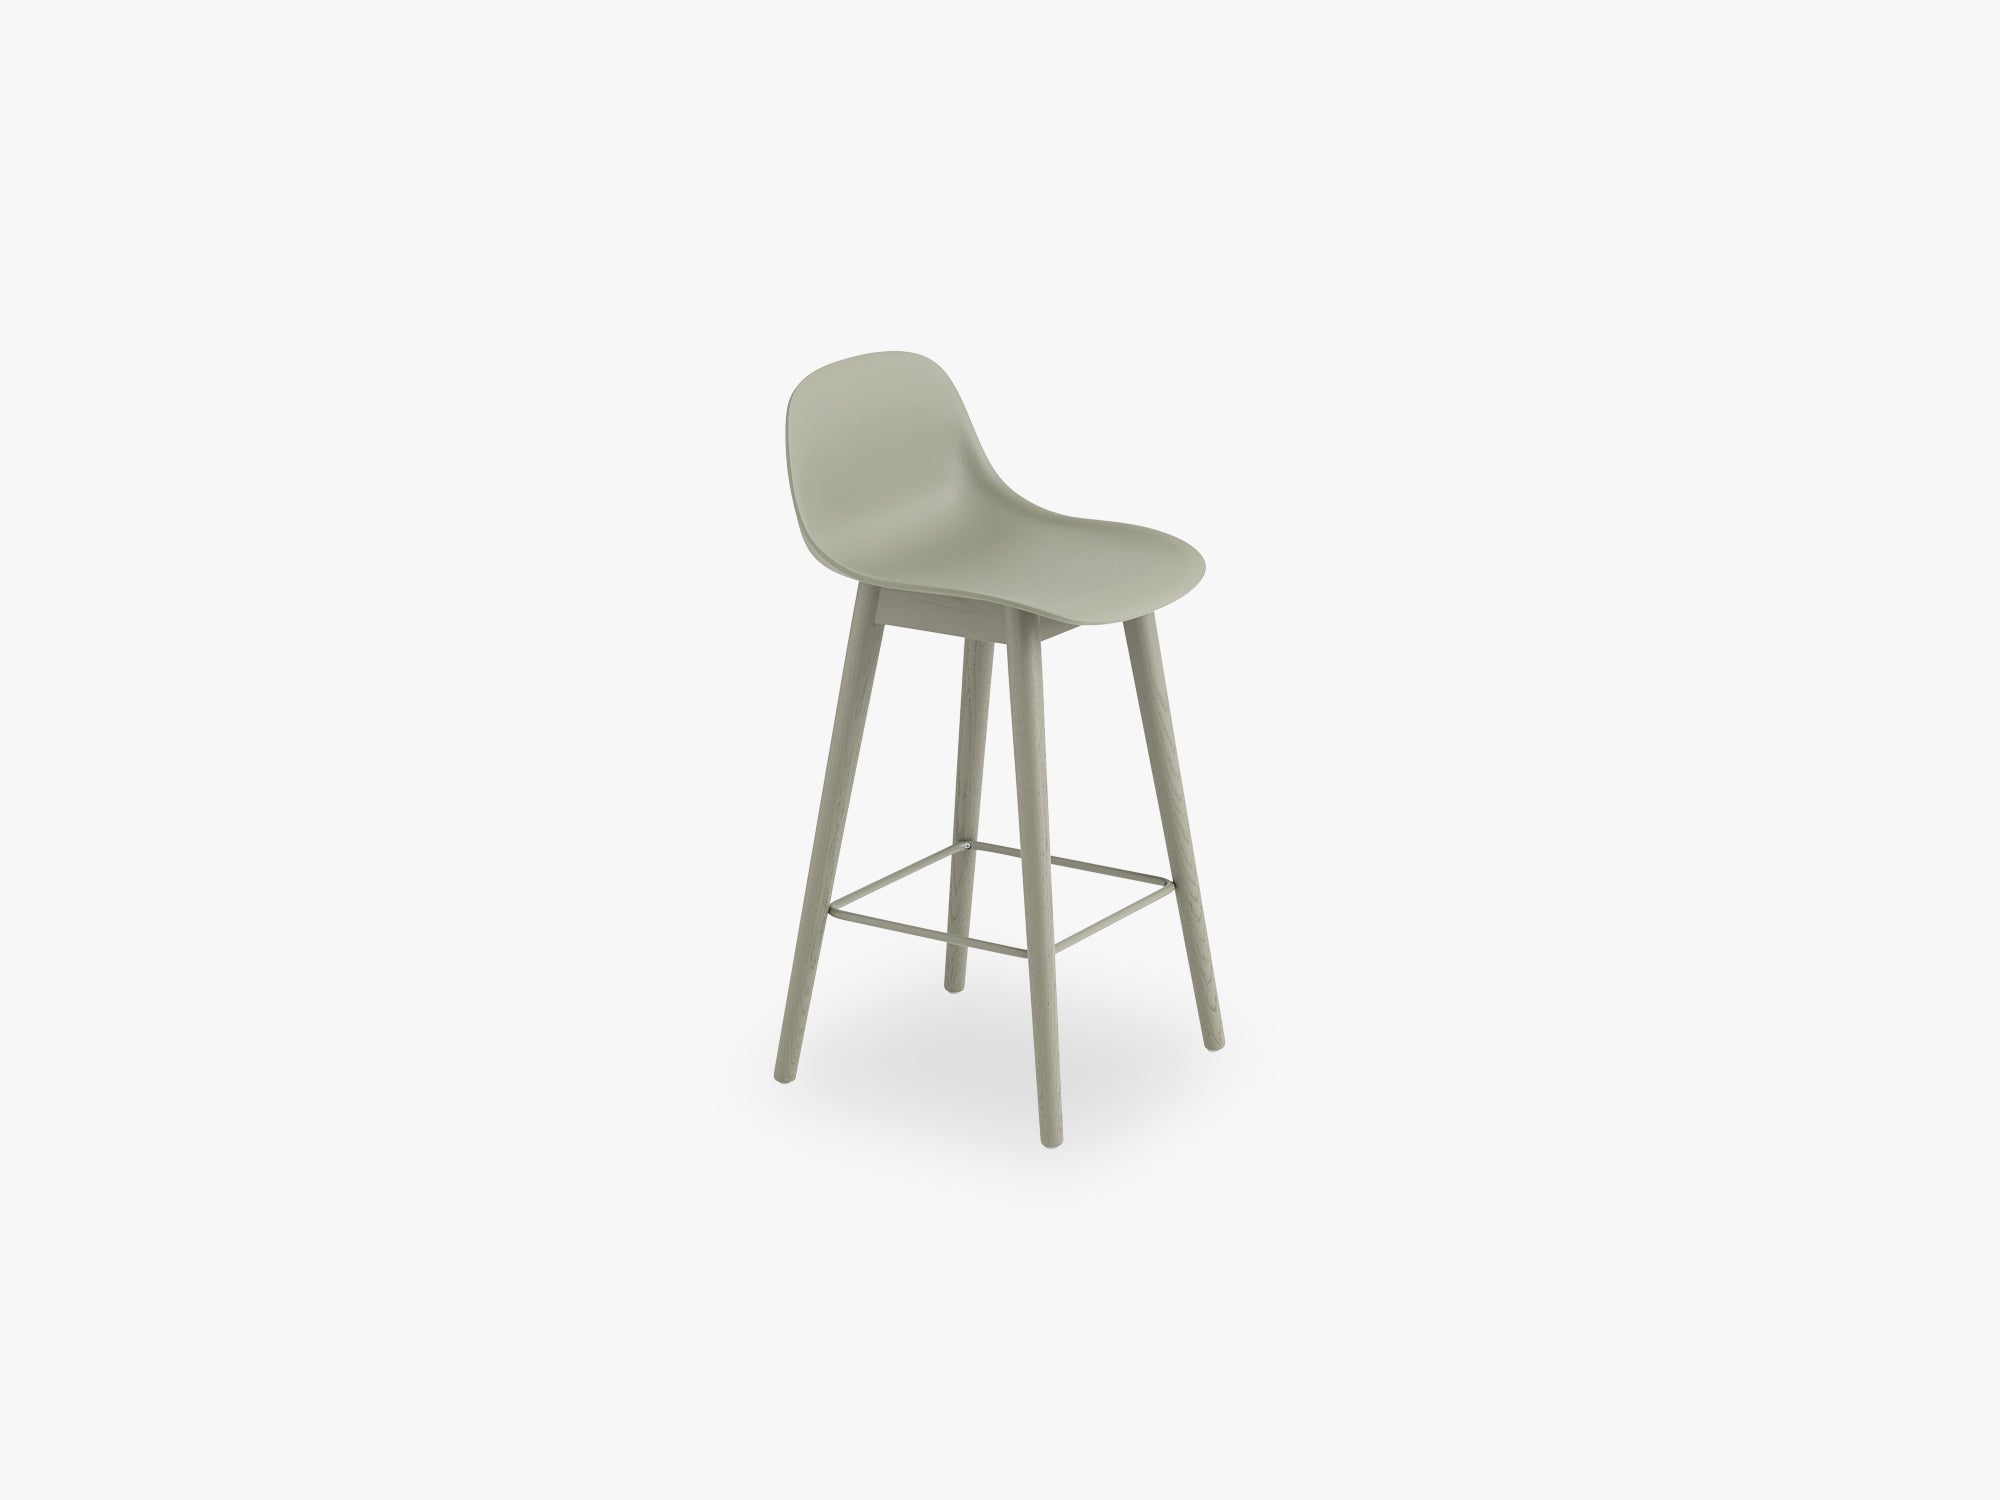 Fiber Bar Stool W Backrest - Wood Base H: 65 Cm, Dusty Green/Dusty Green fra Muuto